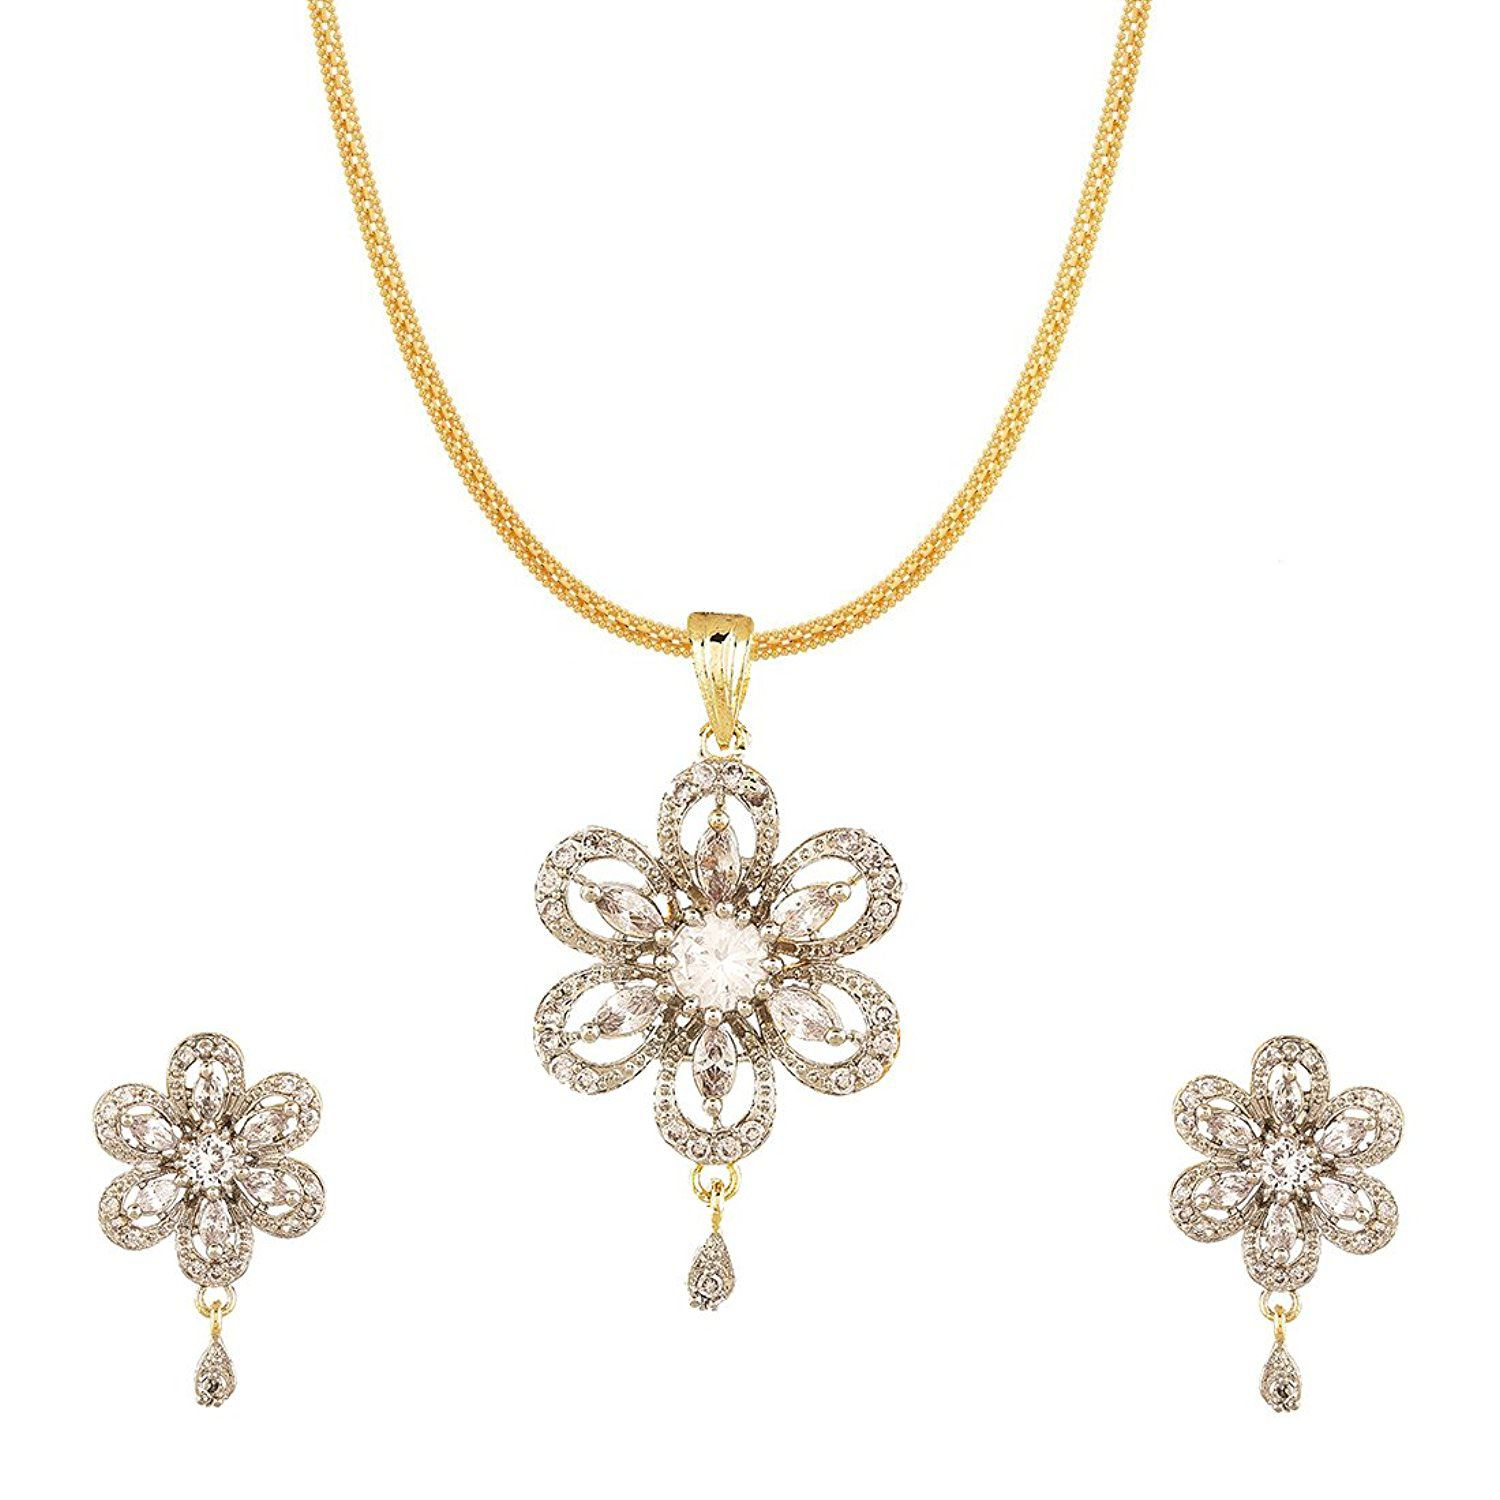 Aabhu Designer Solitaire Flower Pendant Necklace Jewellery set With Earring And Chain For Women And Girl